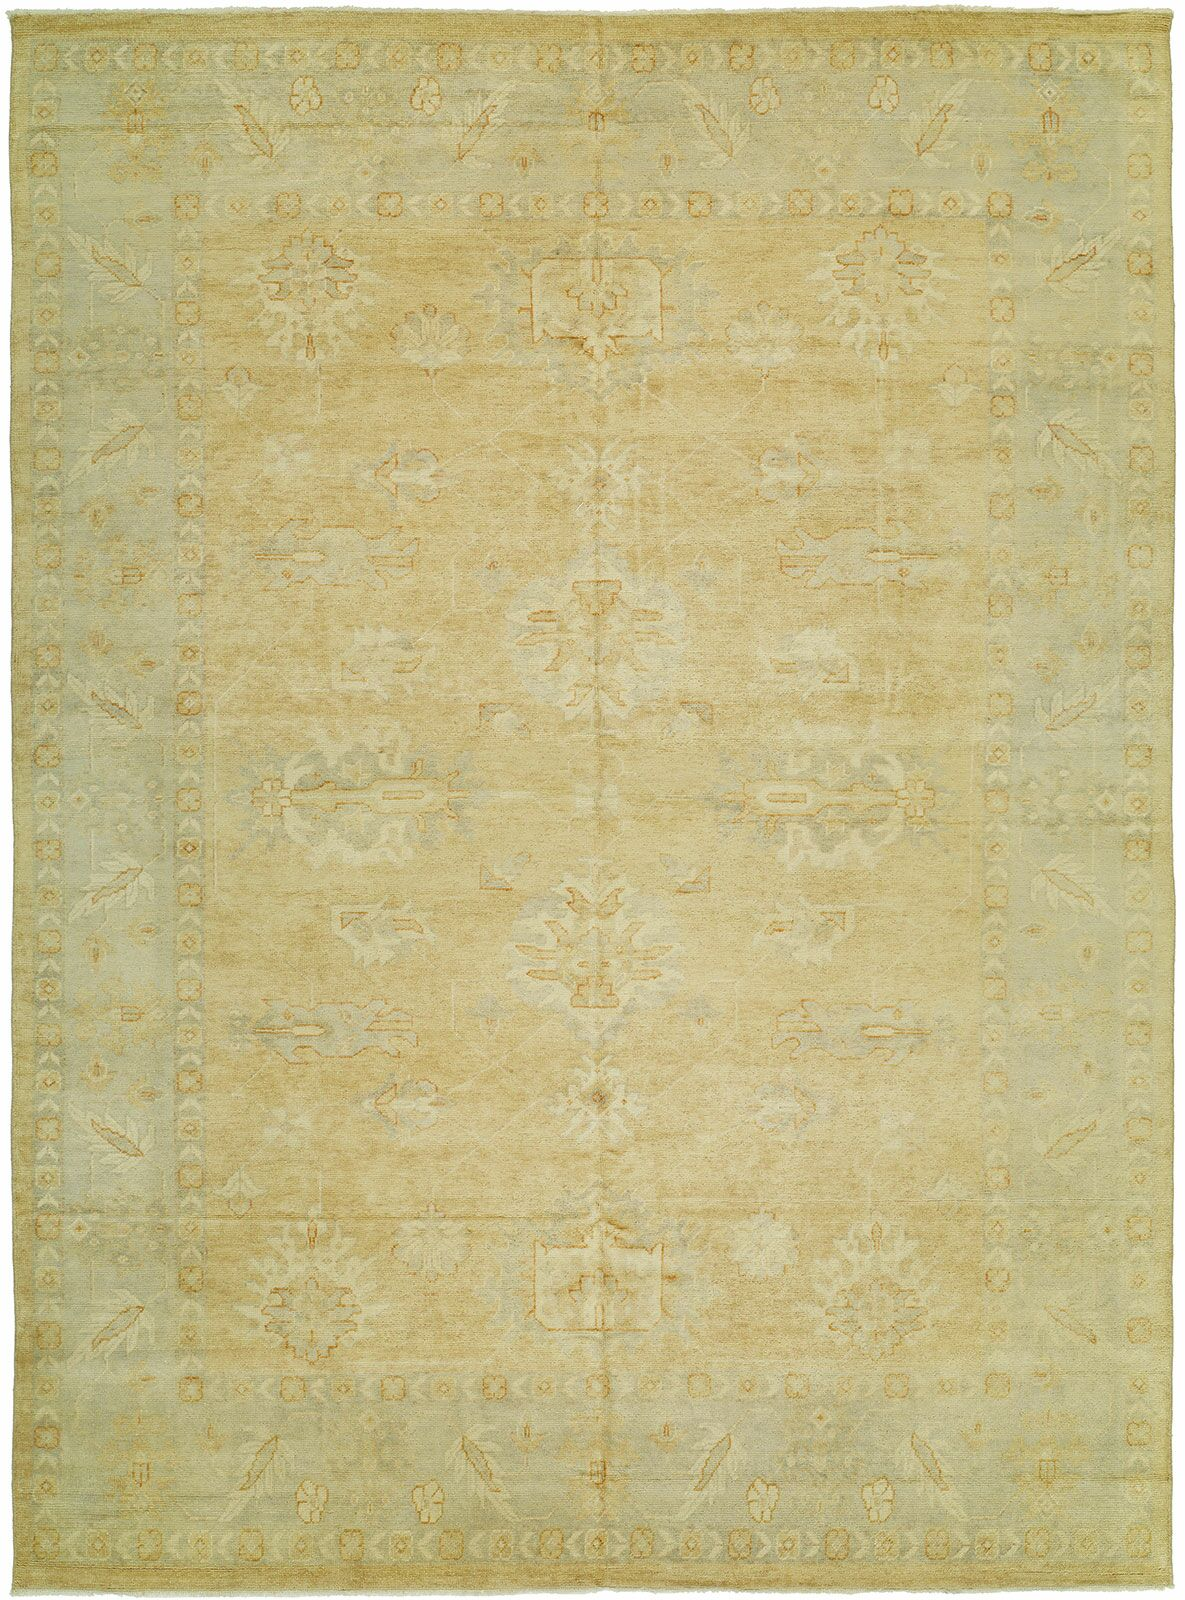 Herrin Hand Knotted Wool Terracotta/Blue Area Rug Rug Size: Rectangle 9' x 12'